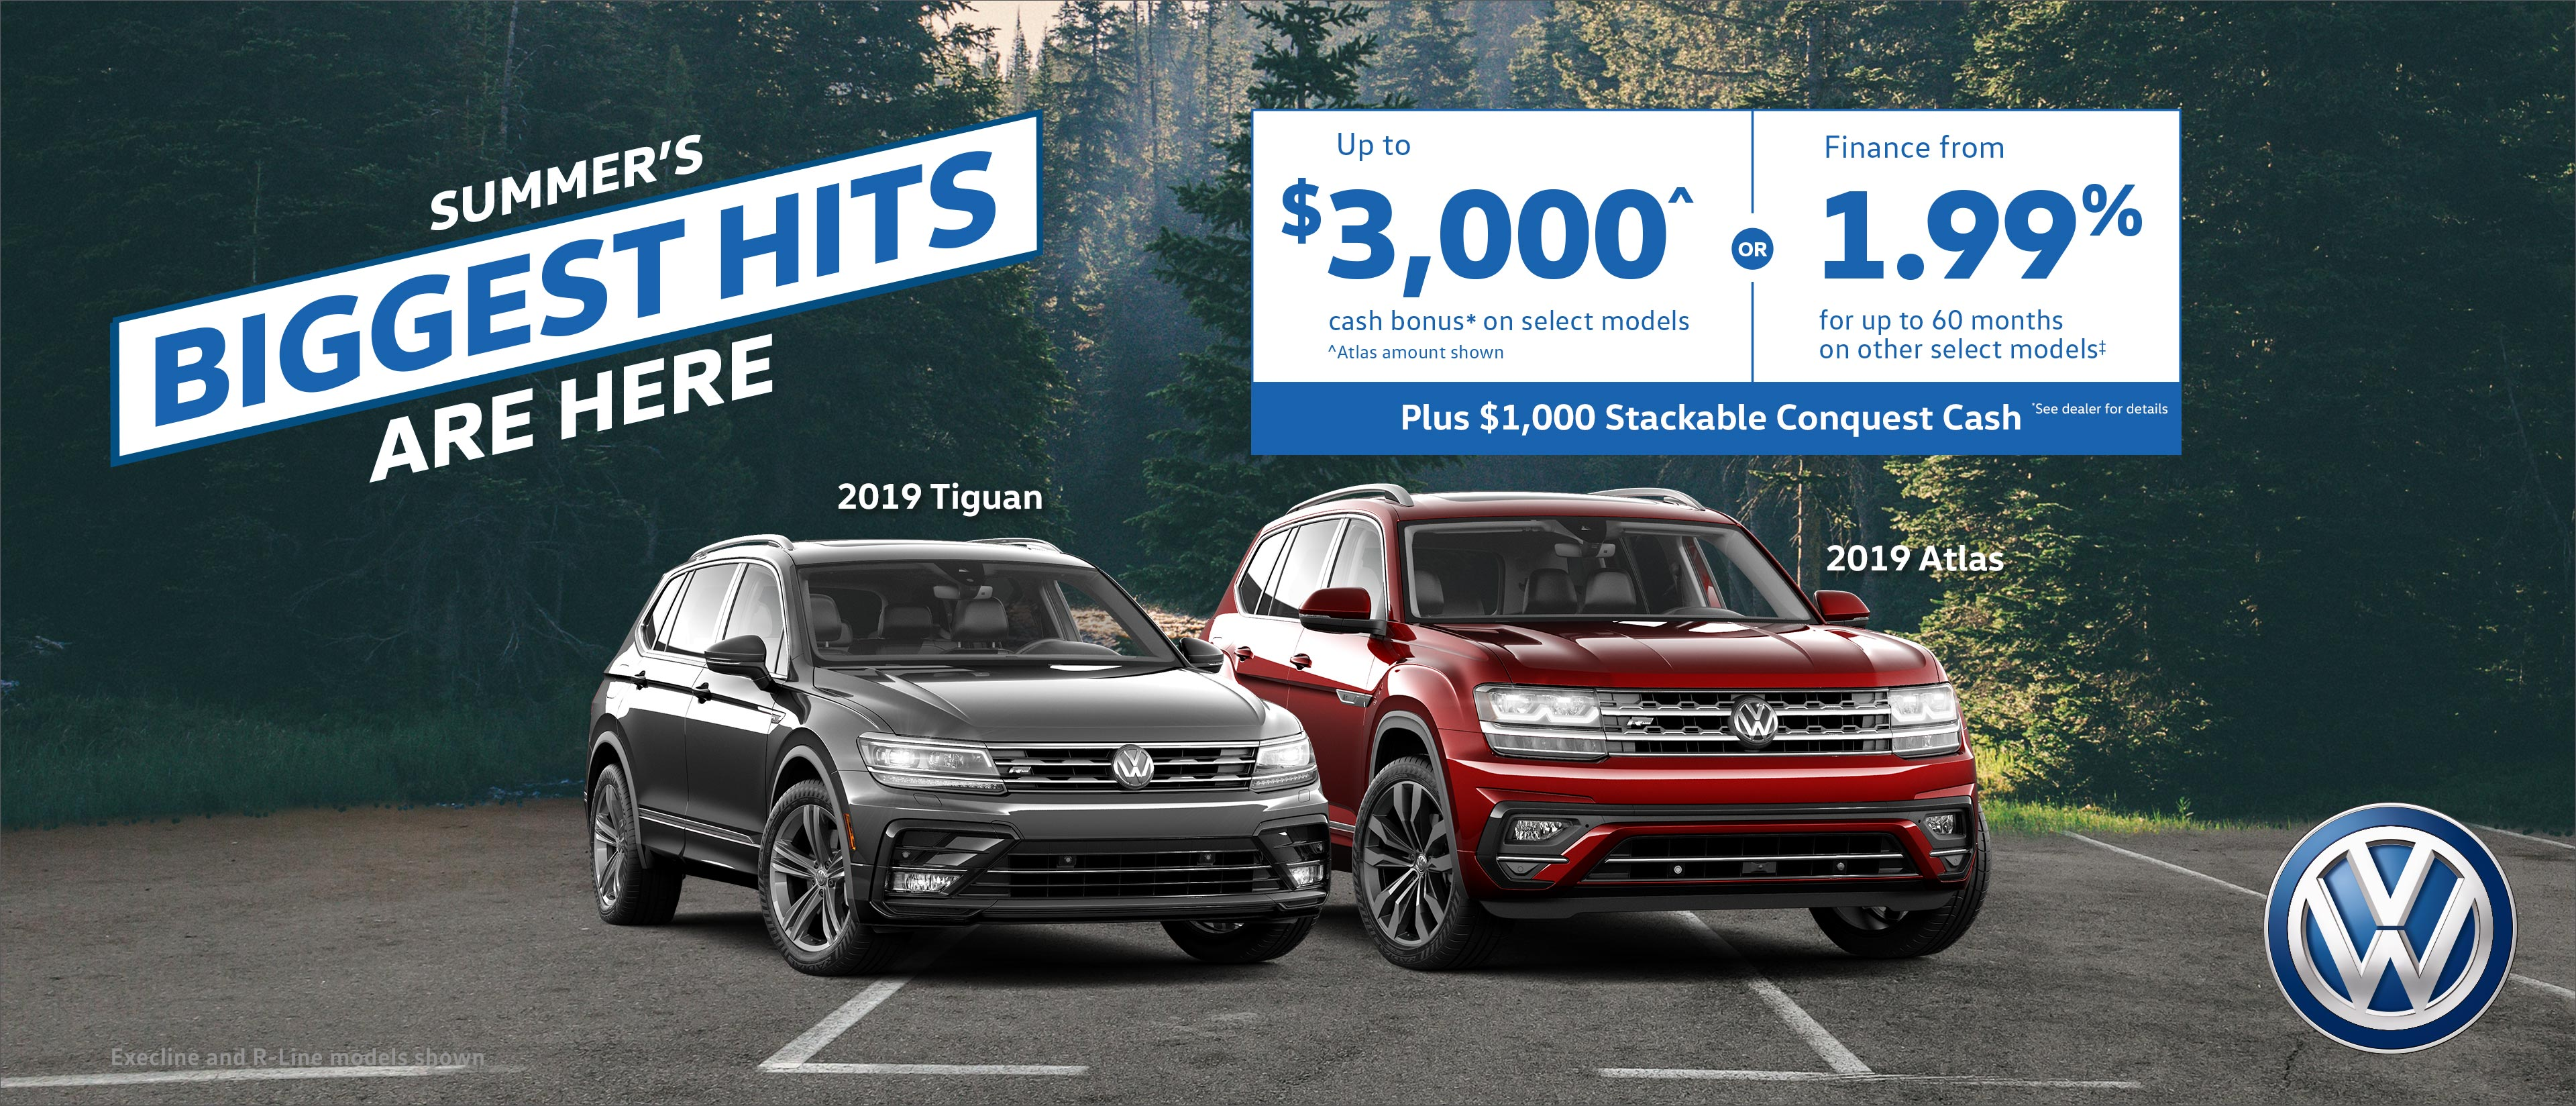 Save up to $3,000 off a new Volkswagen vehicle!